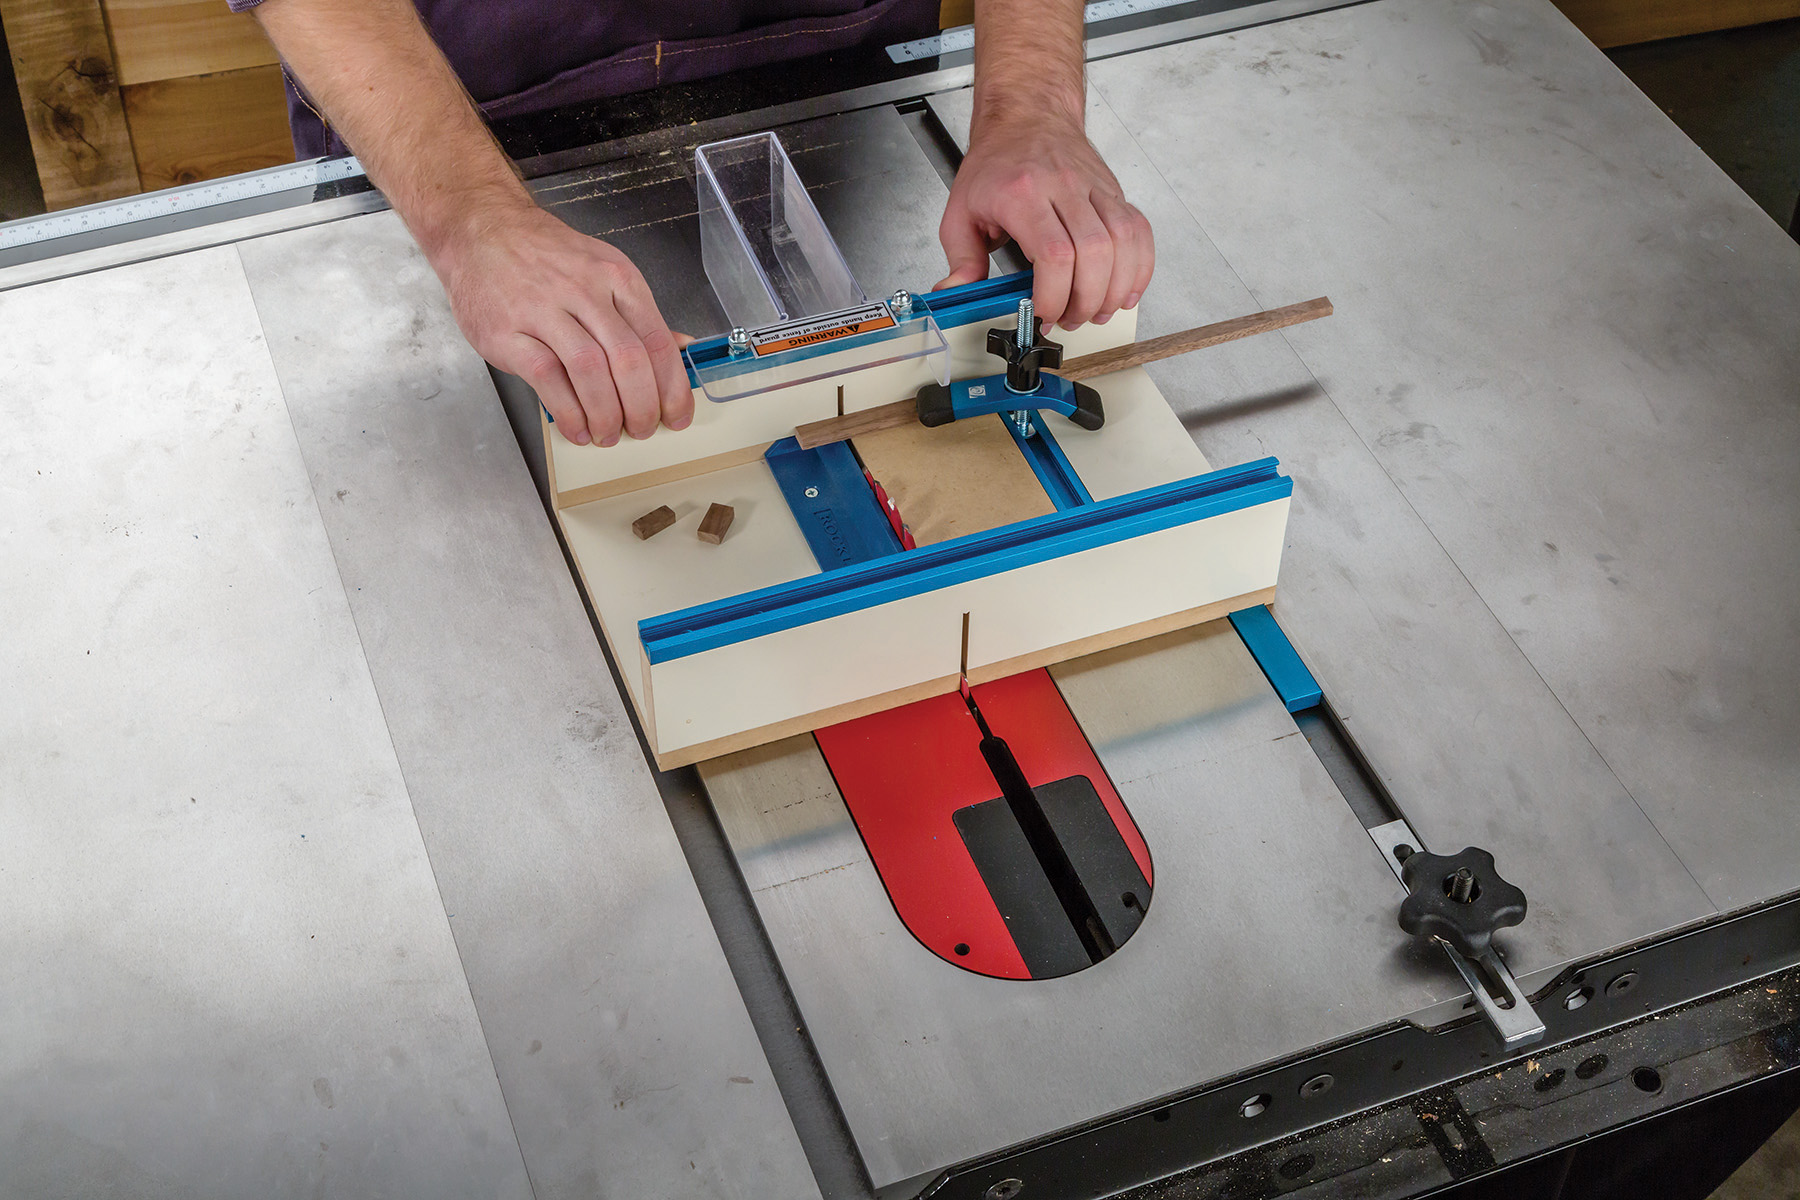 The Rockler Table Saw Small Parts Sled Provides Zero Clearance Support For  Small Workpieces, And Has A Drop Off Ramp That Allows Cut Pieces To Gently  Fall ...